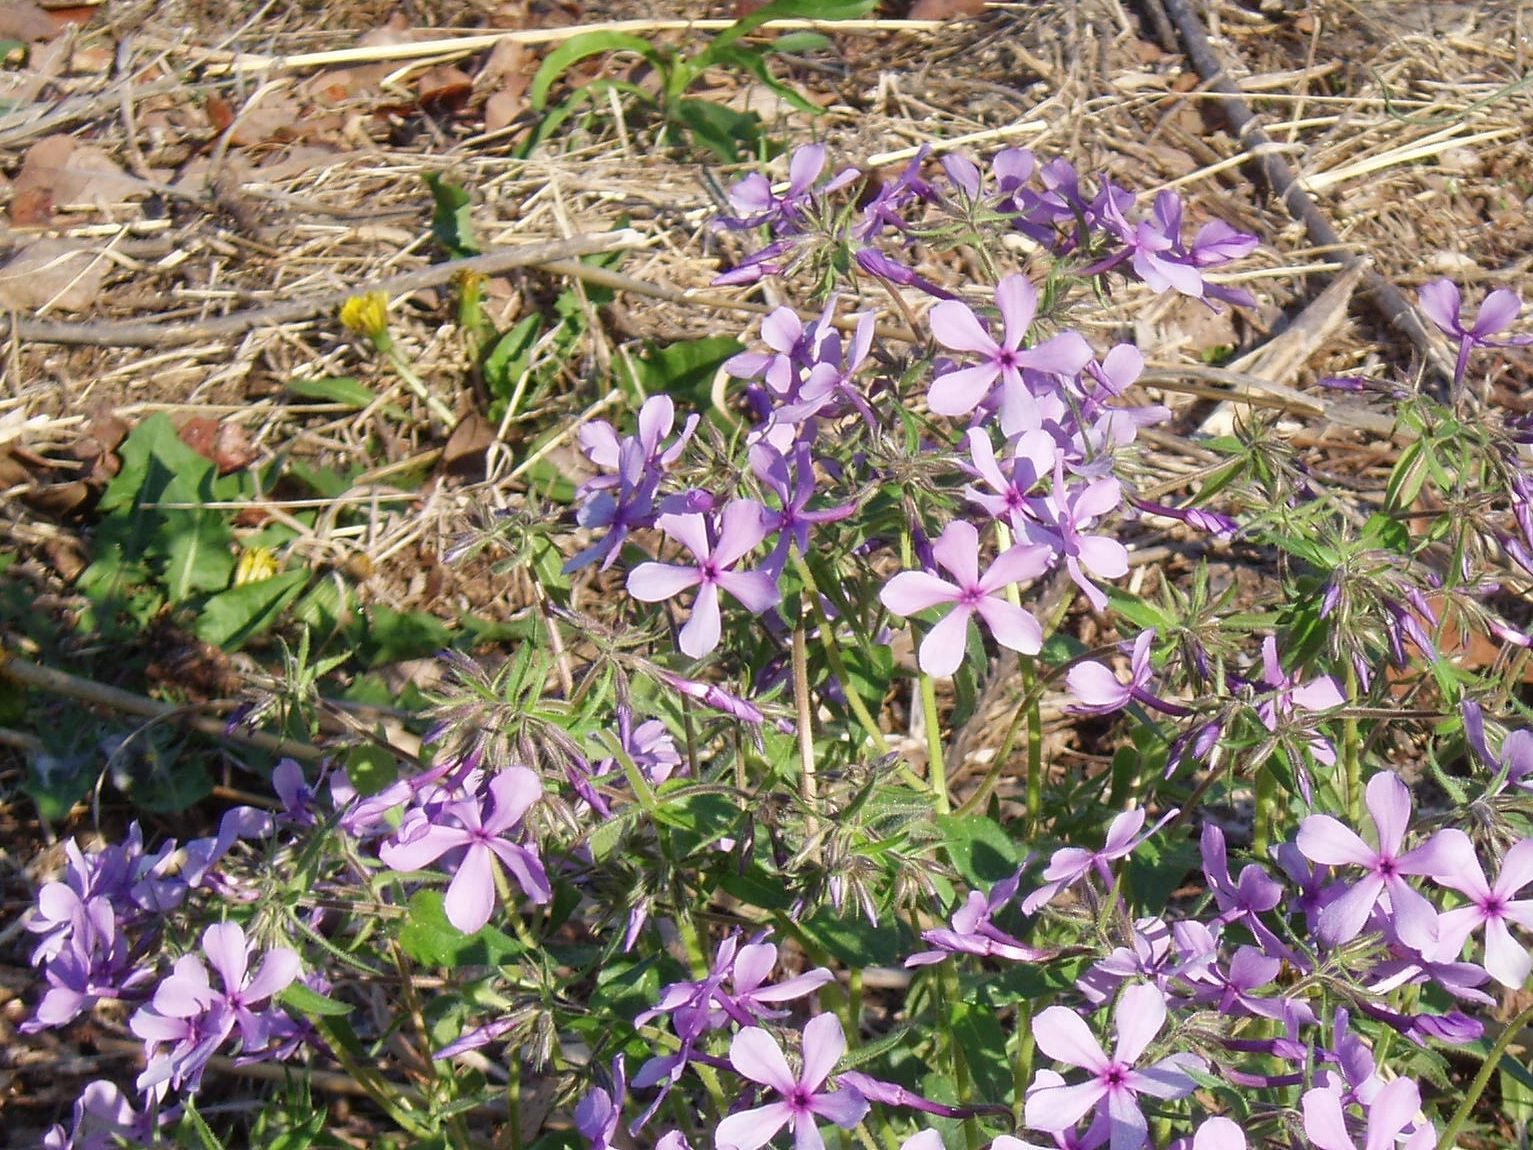 "{""blocks"":[{""key"":""aahif"",""text"":""Phlox divaricata Lapham's Woodland Phlox, Wild Sweet William - potted plants email john@easywildflowers.com  "",""type"":""unstyled"",""depth"":0,""inlineStyleRanges"":[],""entityRanges"":[],""data"":{}}],""entityMap"":{}}"